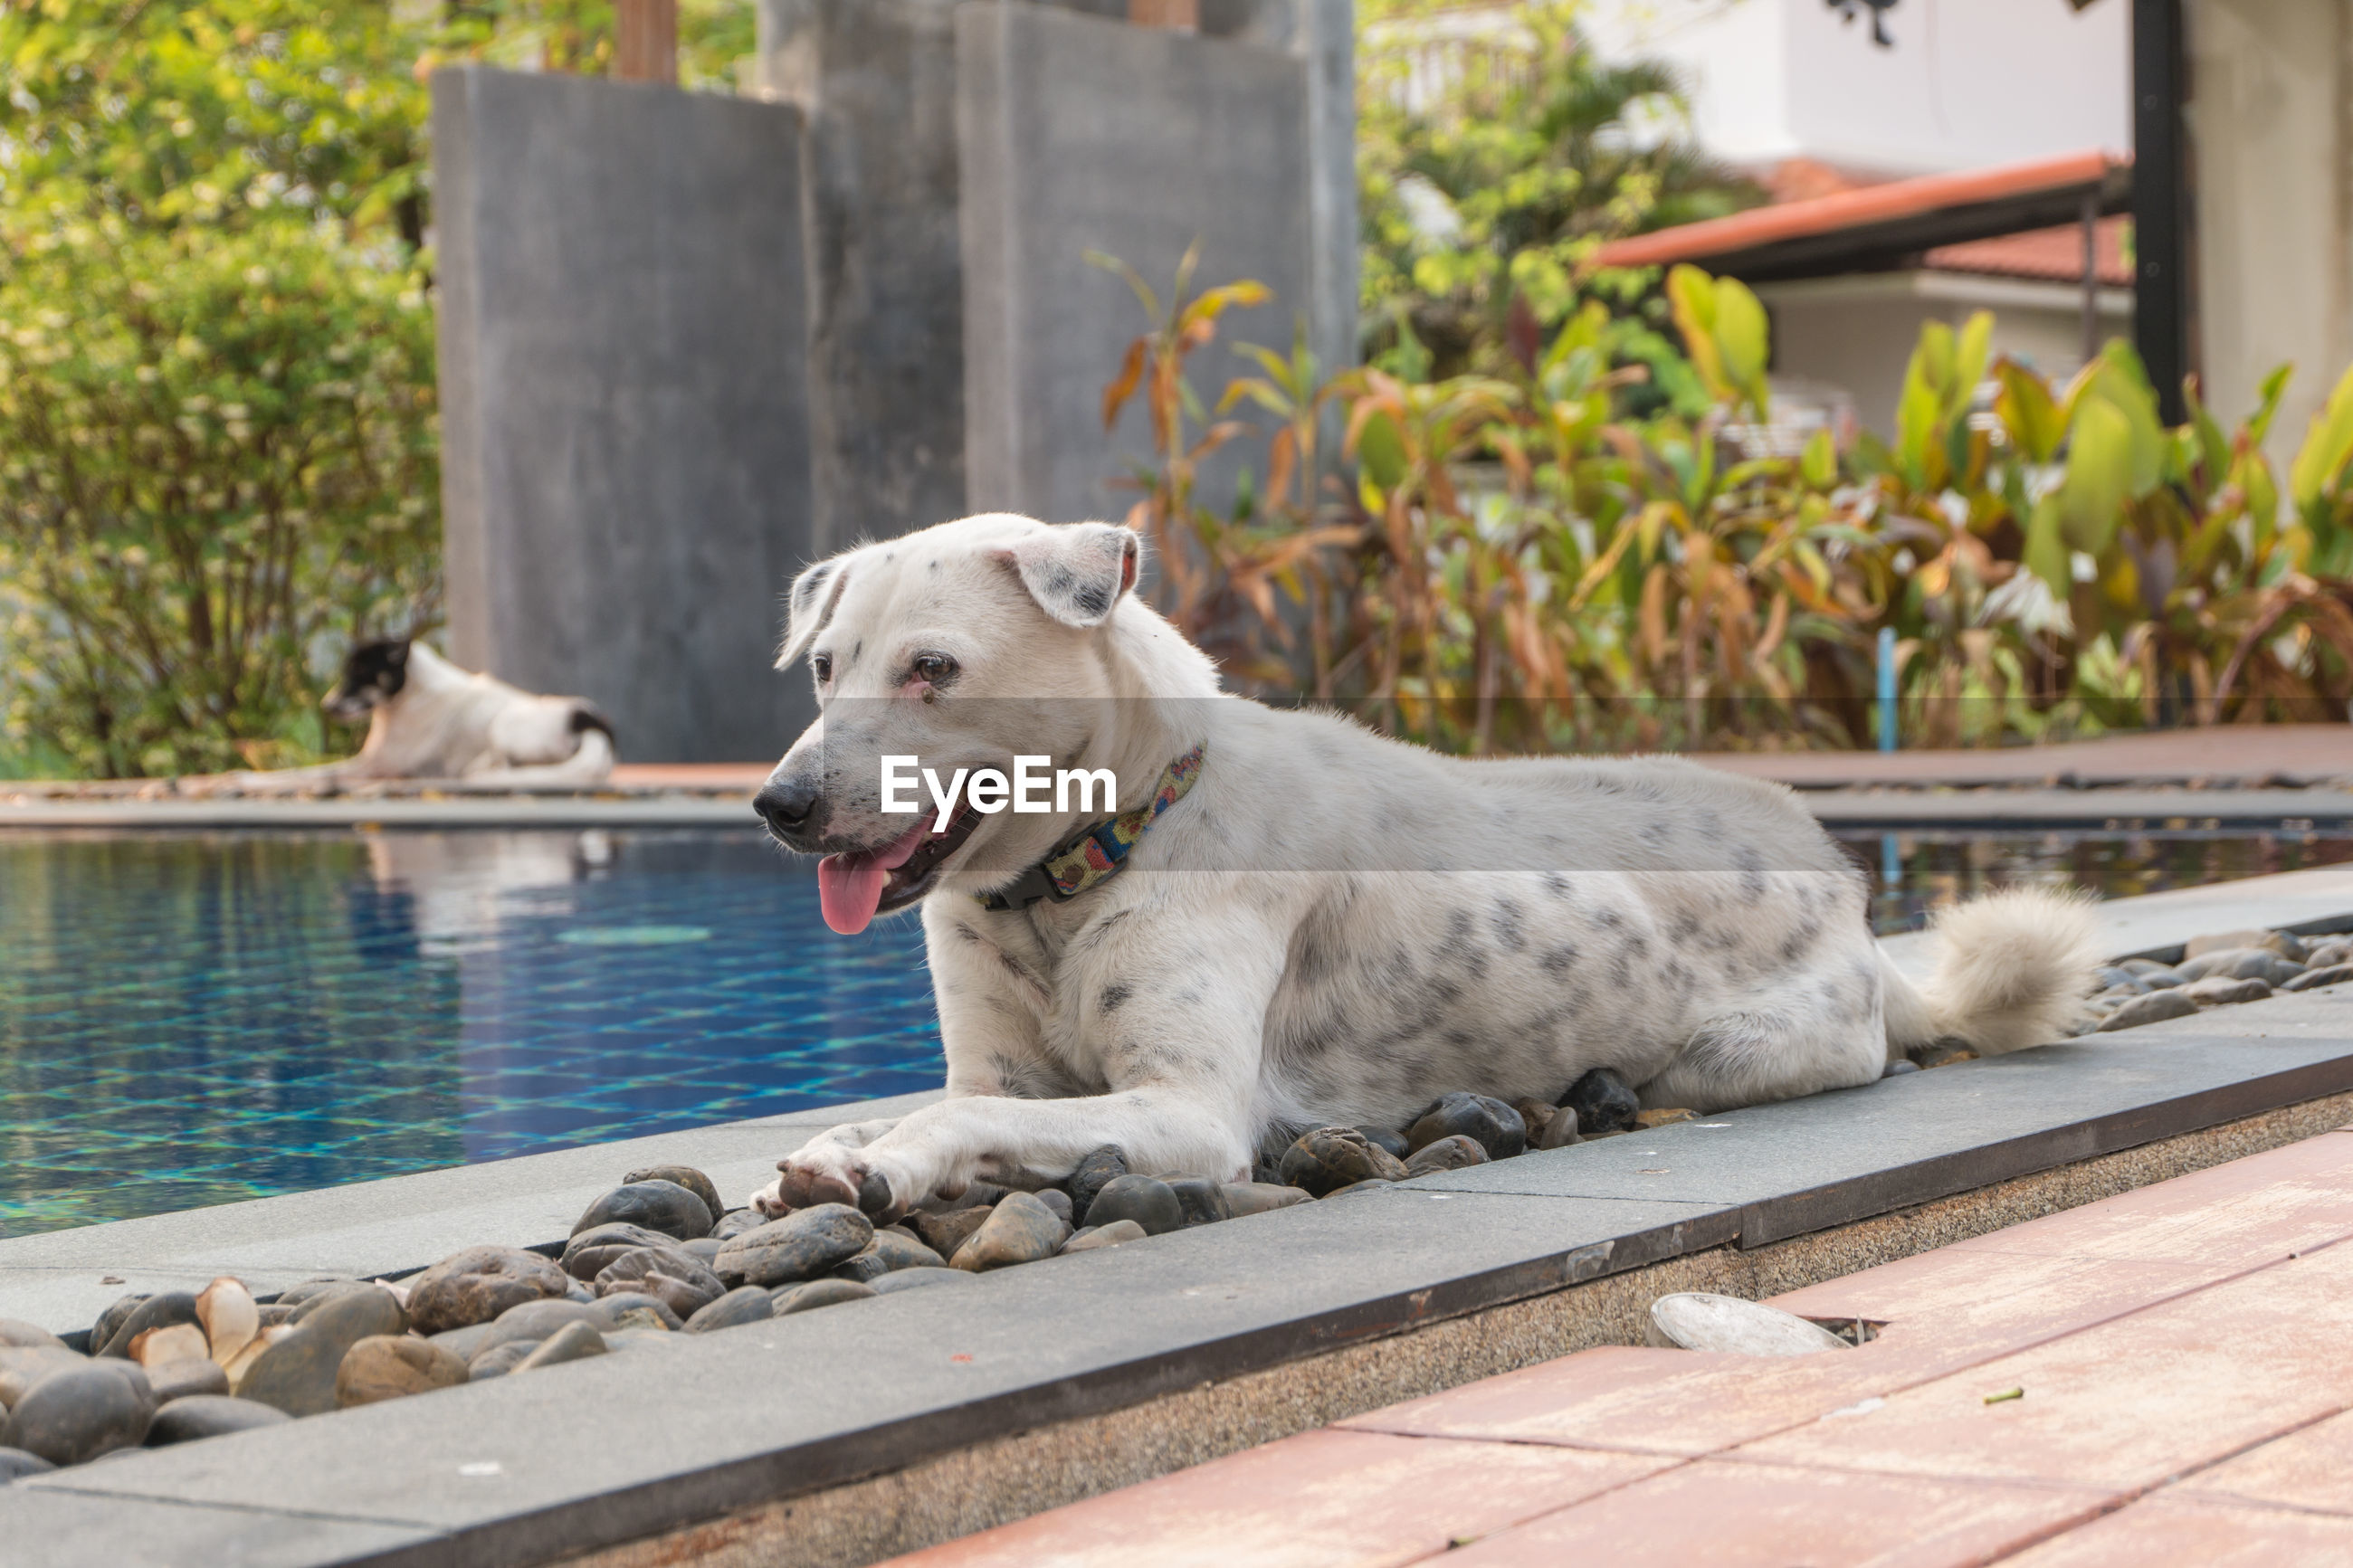 Close-up of dog sitting on stones by swimming pool